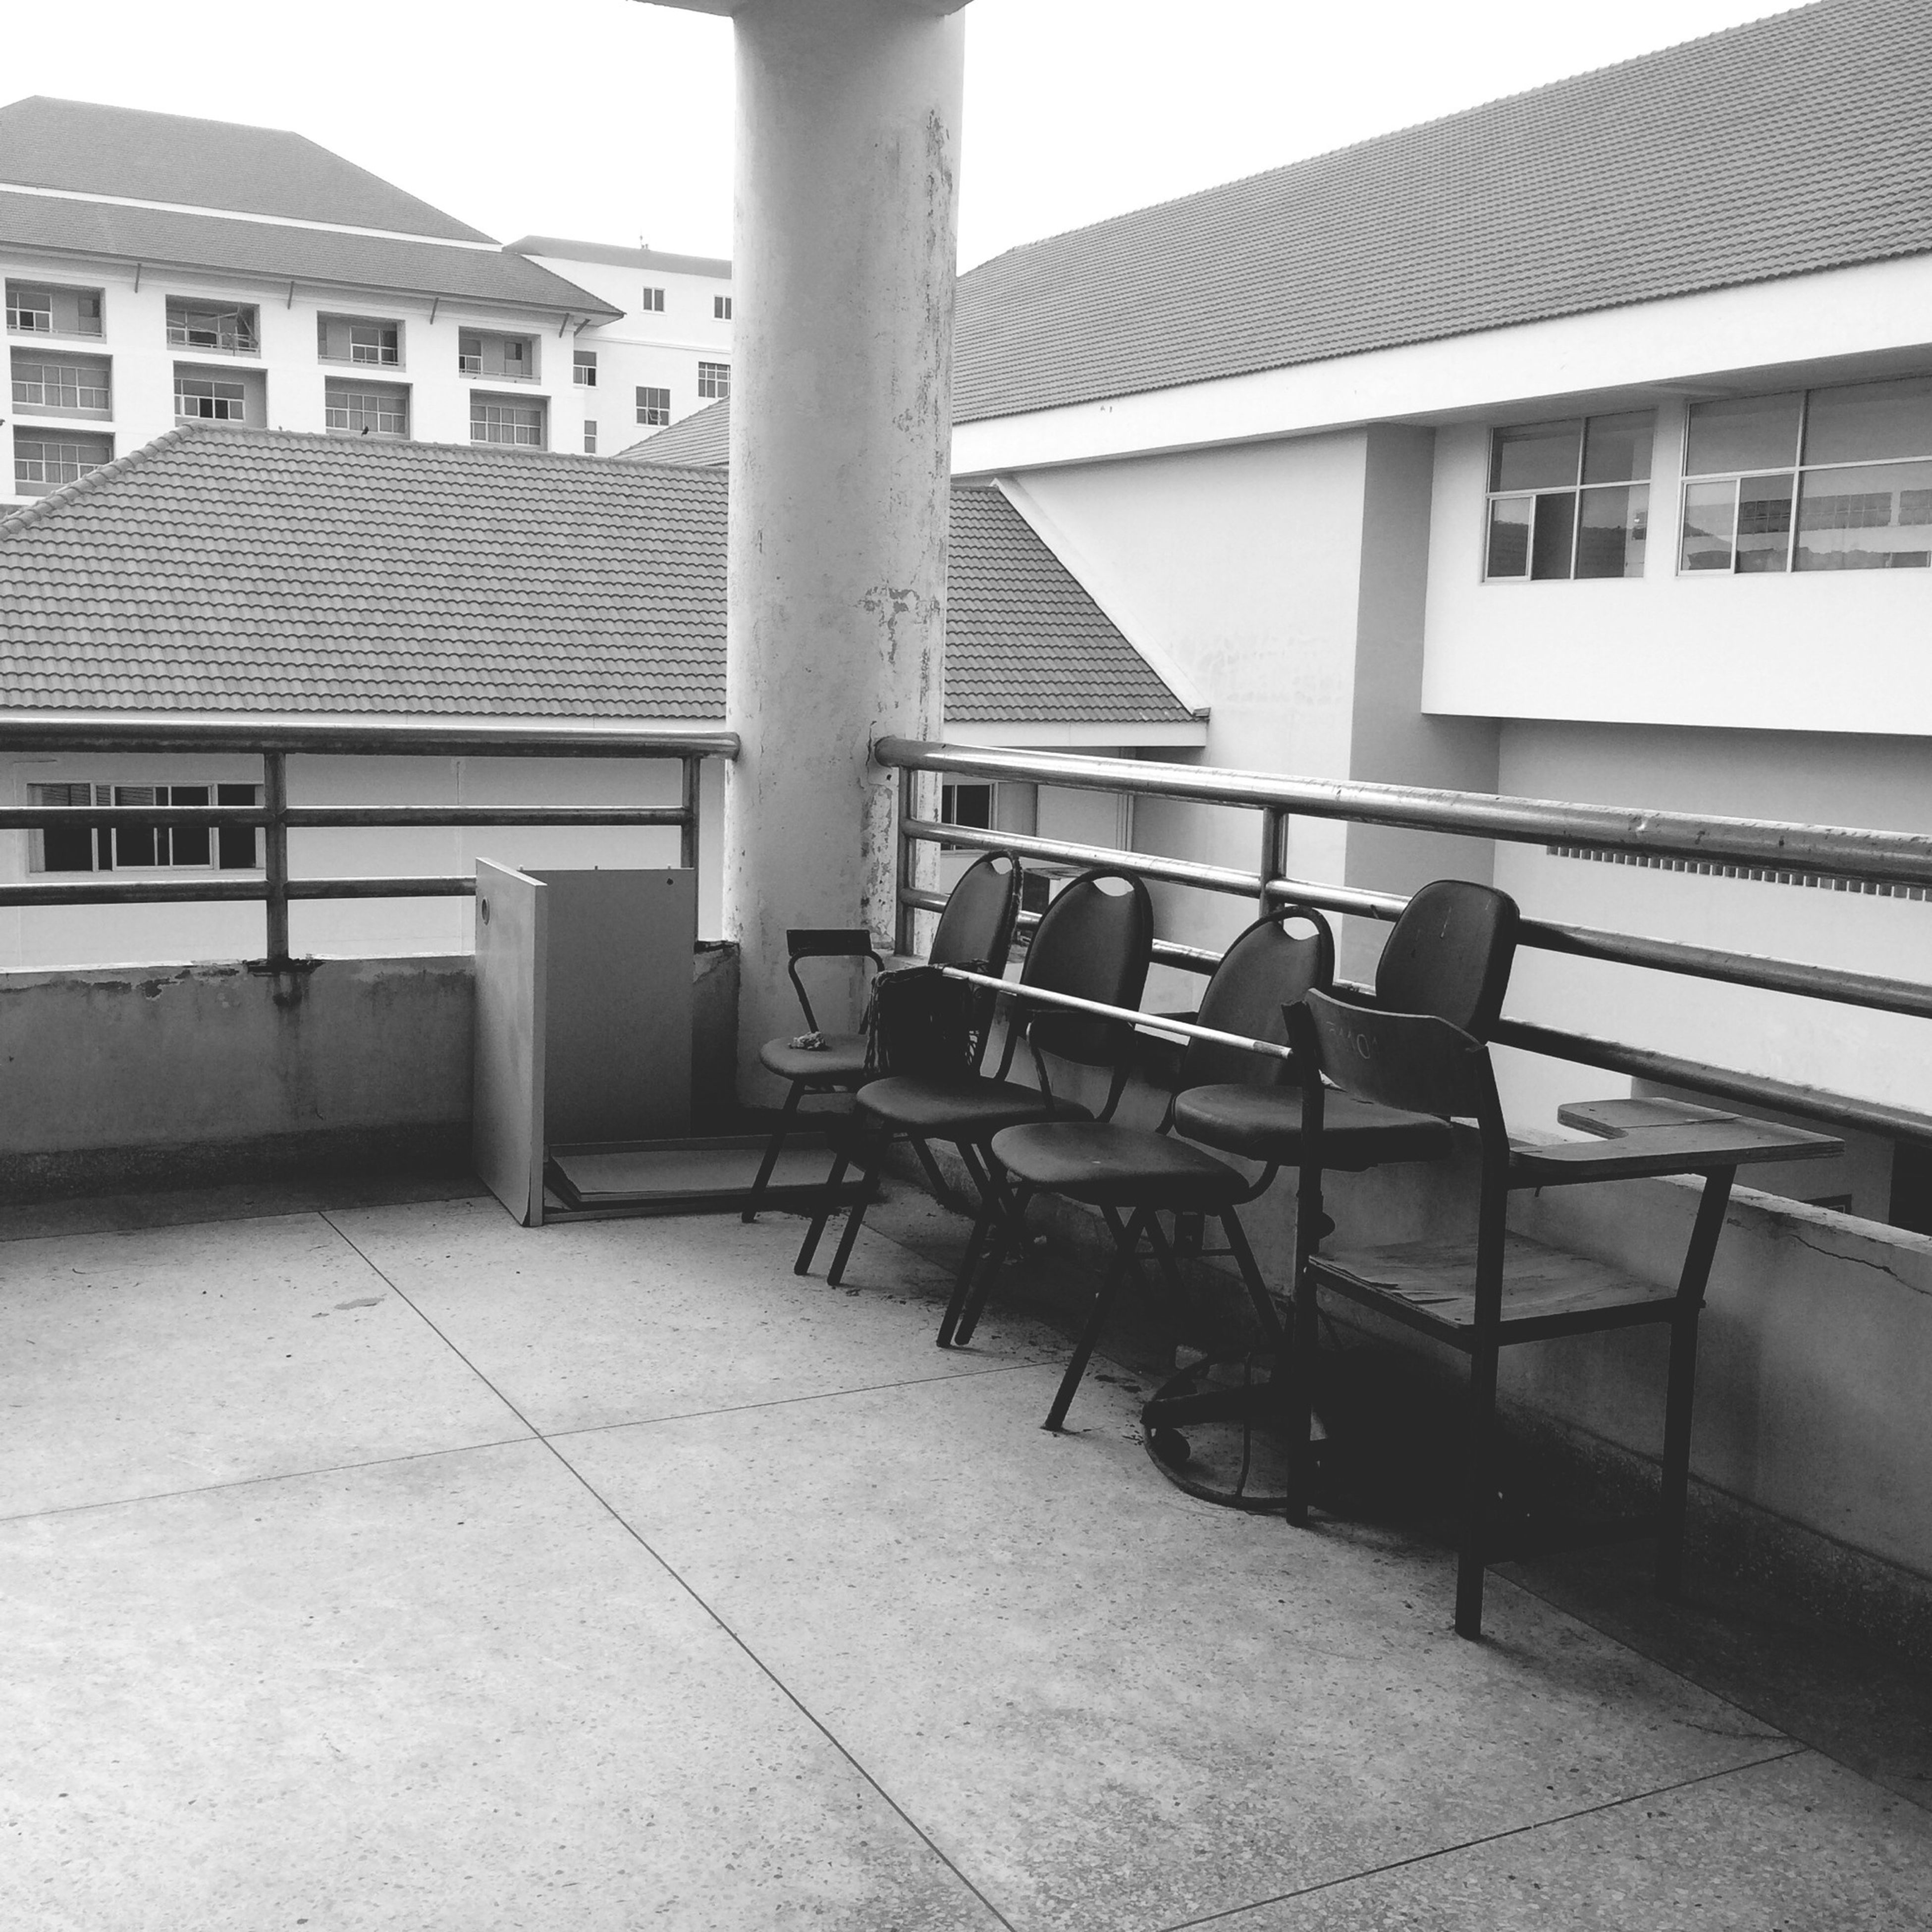 architecture, built structure, building exterior, chair, empty, absence, building, sunlight, railing, city, residential building, residential structure, day, house, bench, window, no people, balcony, outdoors, shadow